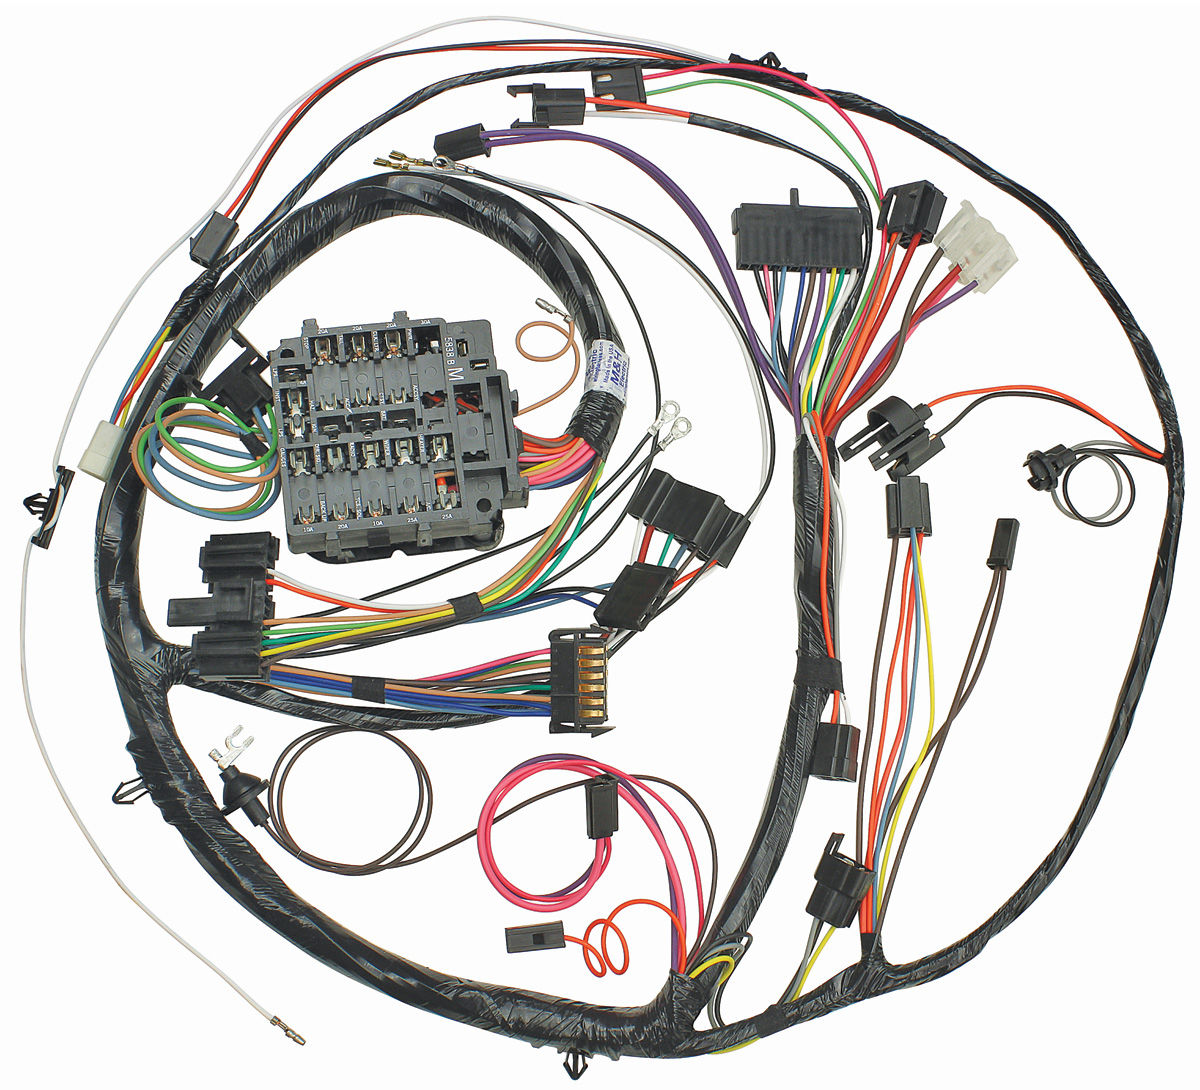 wiring diagram for dash gauges 69 w30 68 charger wiring diagram for dash